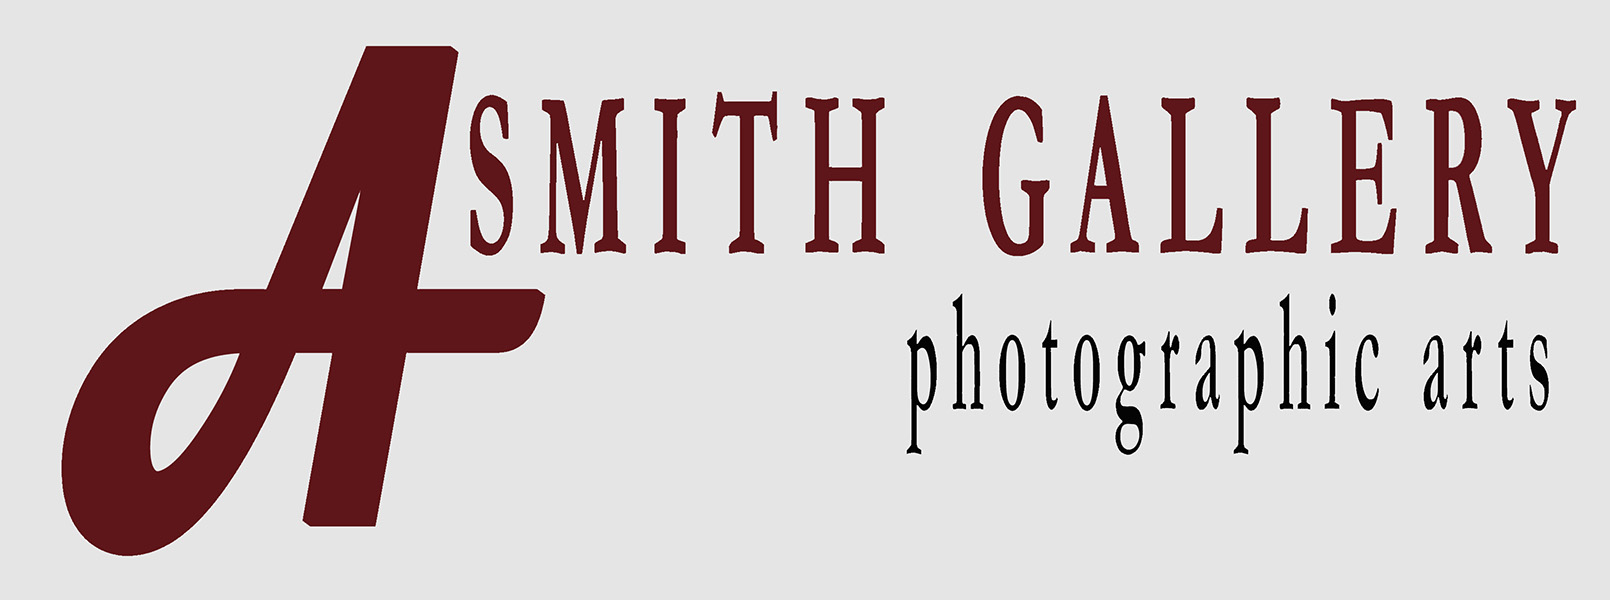 A Smith Gallery – 'Lumen' photo competition - logo